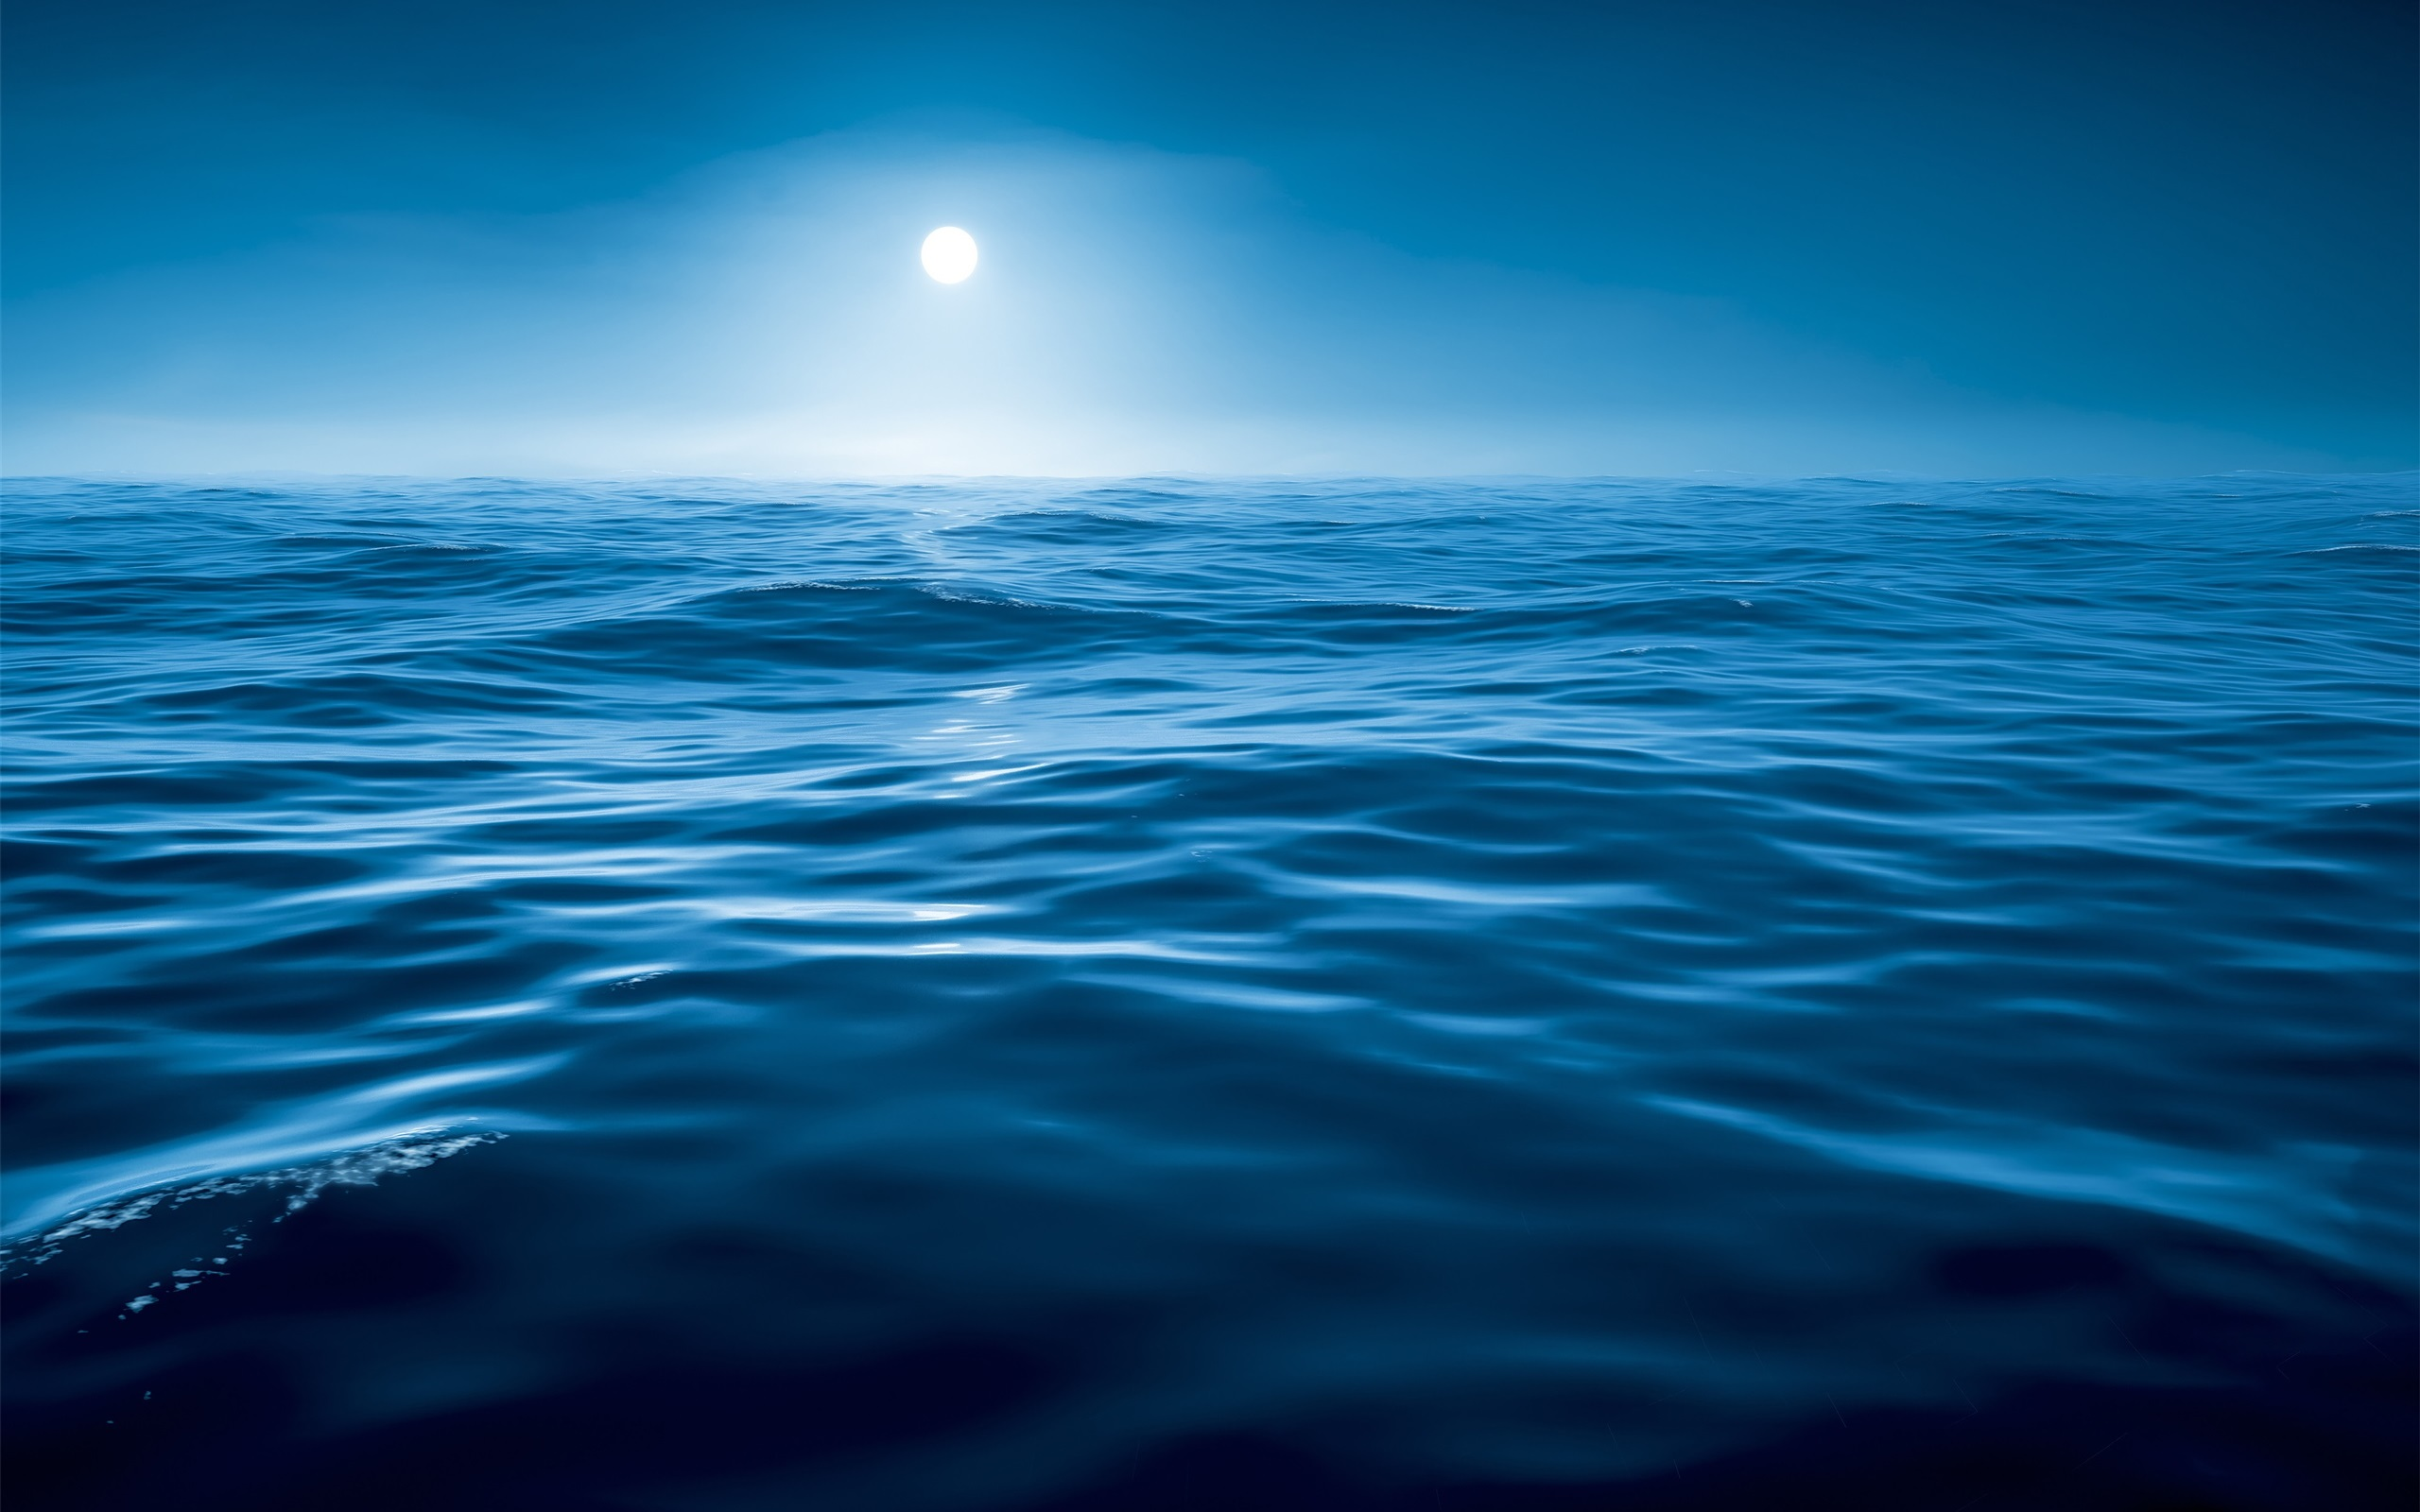 https://es.best-wallpaper.net/wallpaper/2560x1600/1509/Night-water-sea-blue-moon_2560x1600.jpg